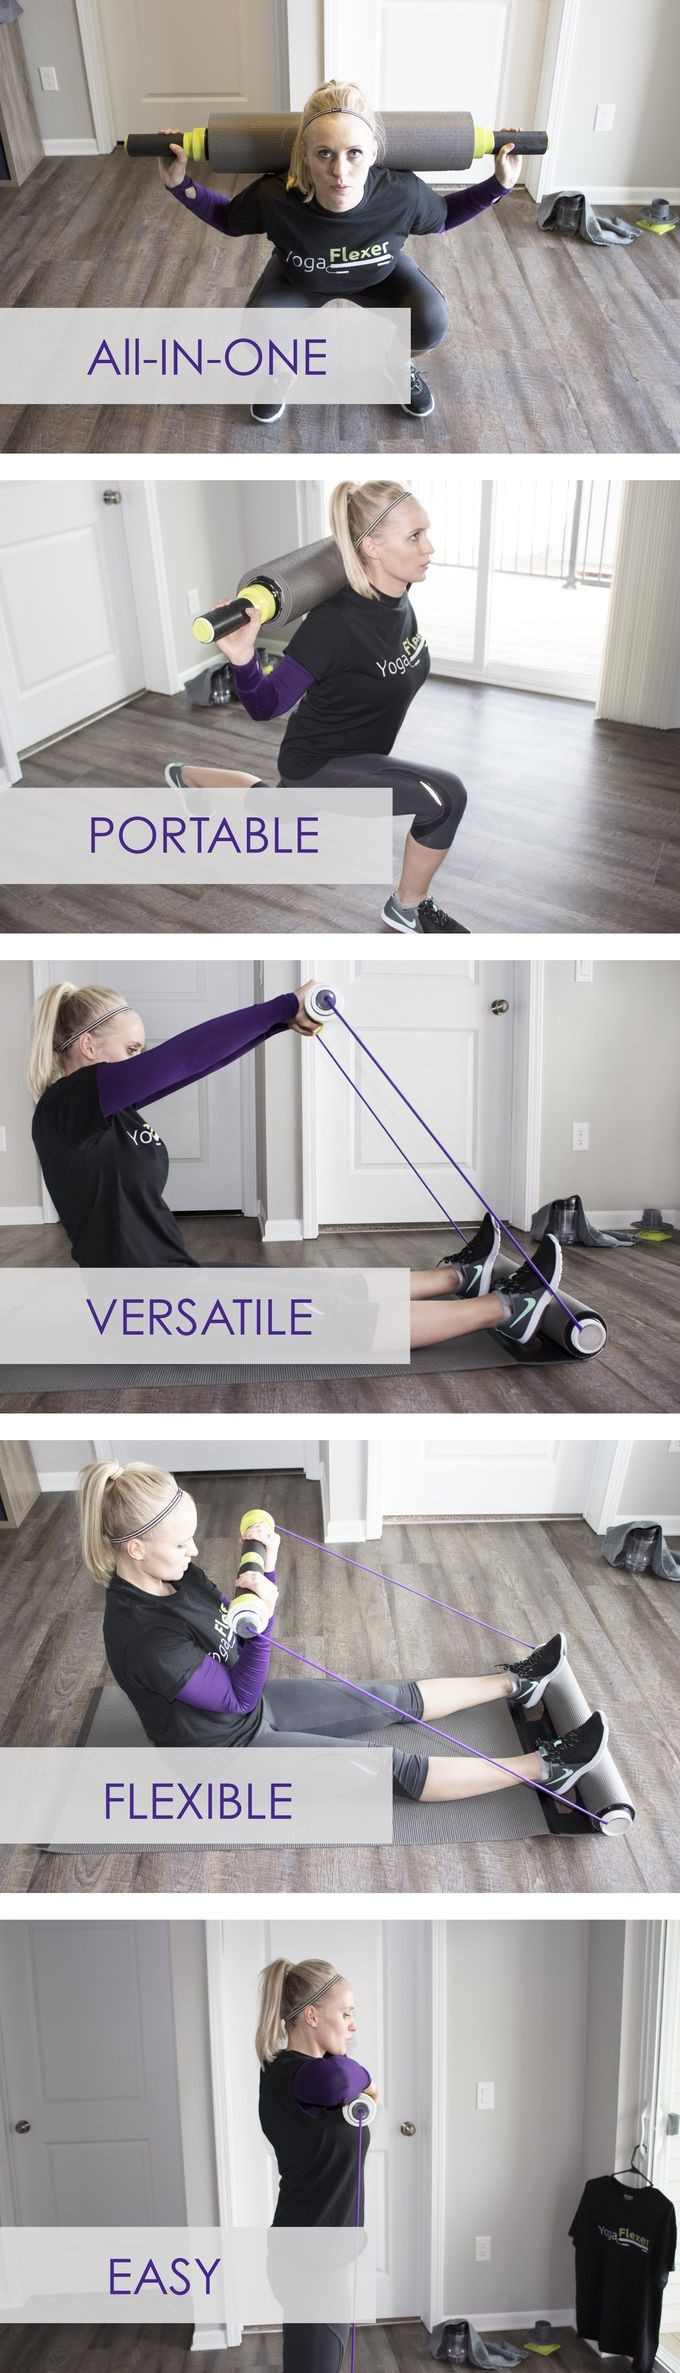 FIVE essential fitness tools rolled into one. Perform hundreds of quick, effective, and energizing workouts from home or on-the-go.